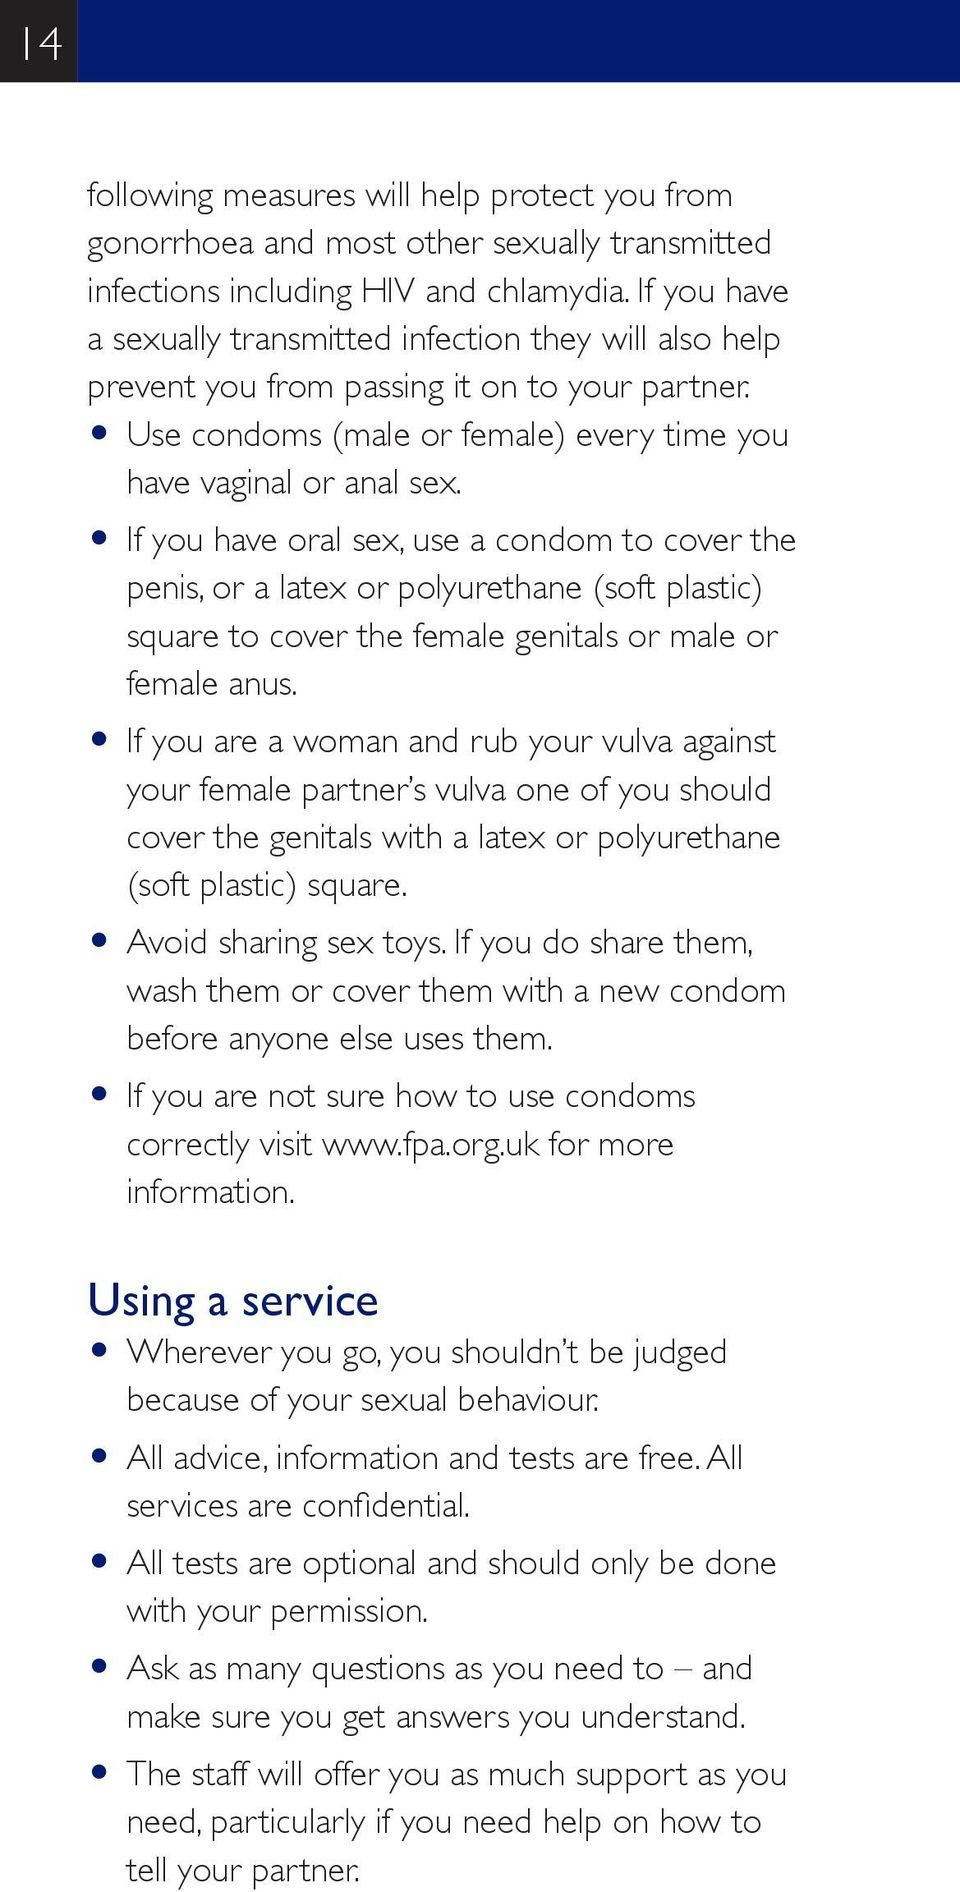 O If you have oral sex, use a condom to cover the penis, or a latex or polyurethane (soft plastic) square to cover the female genitals or male or female anus.